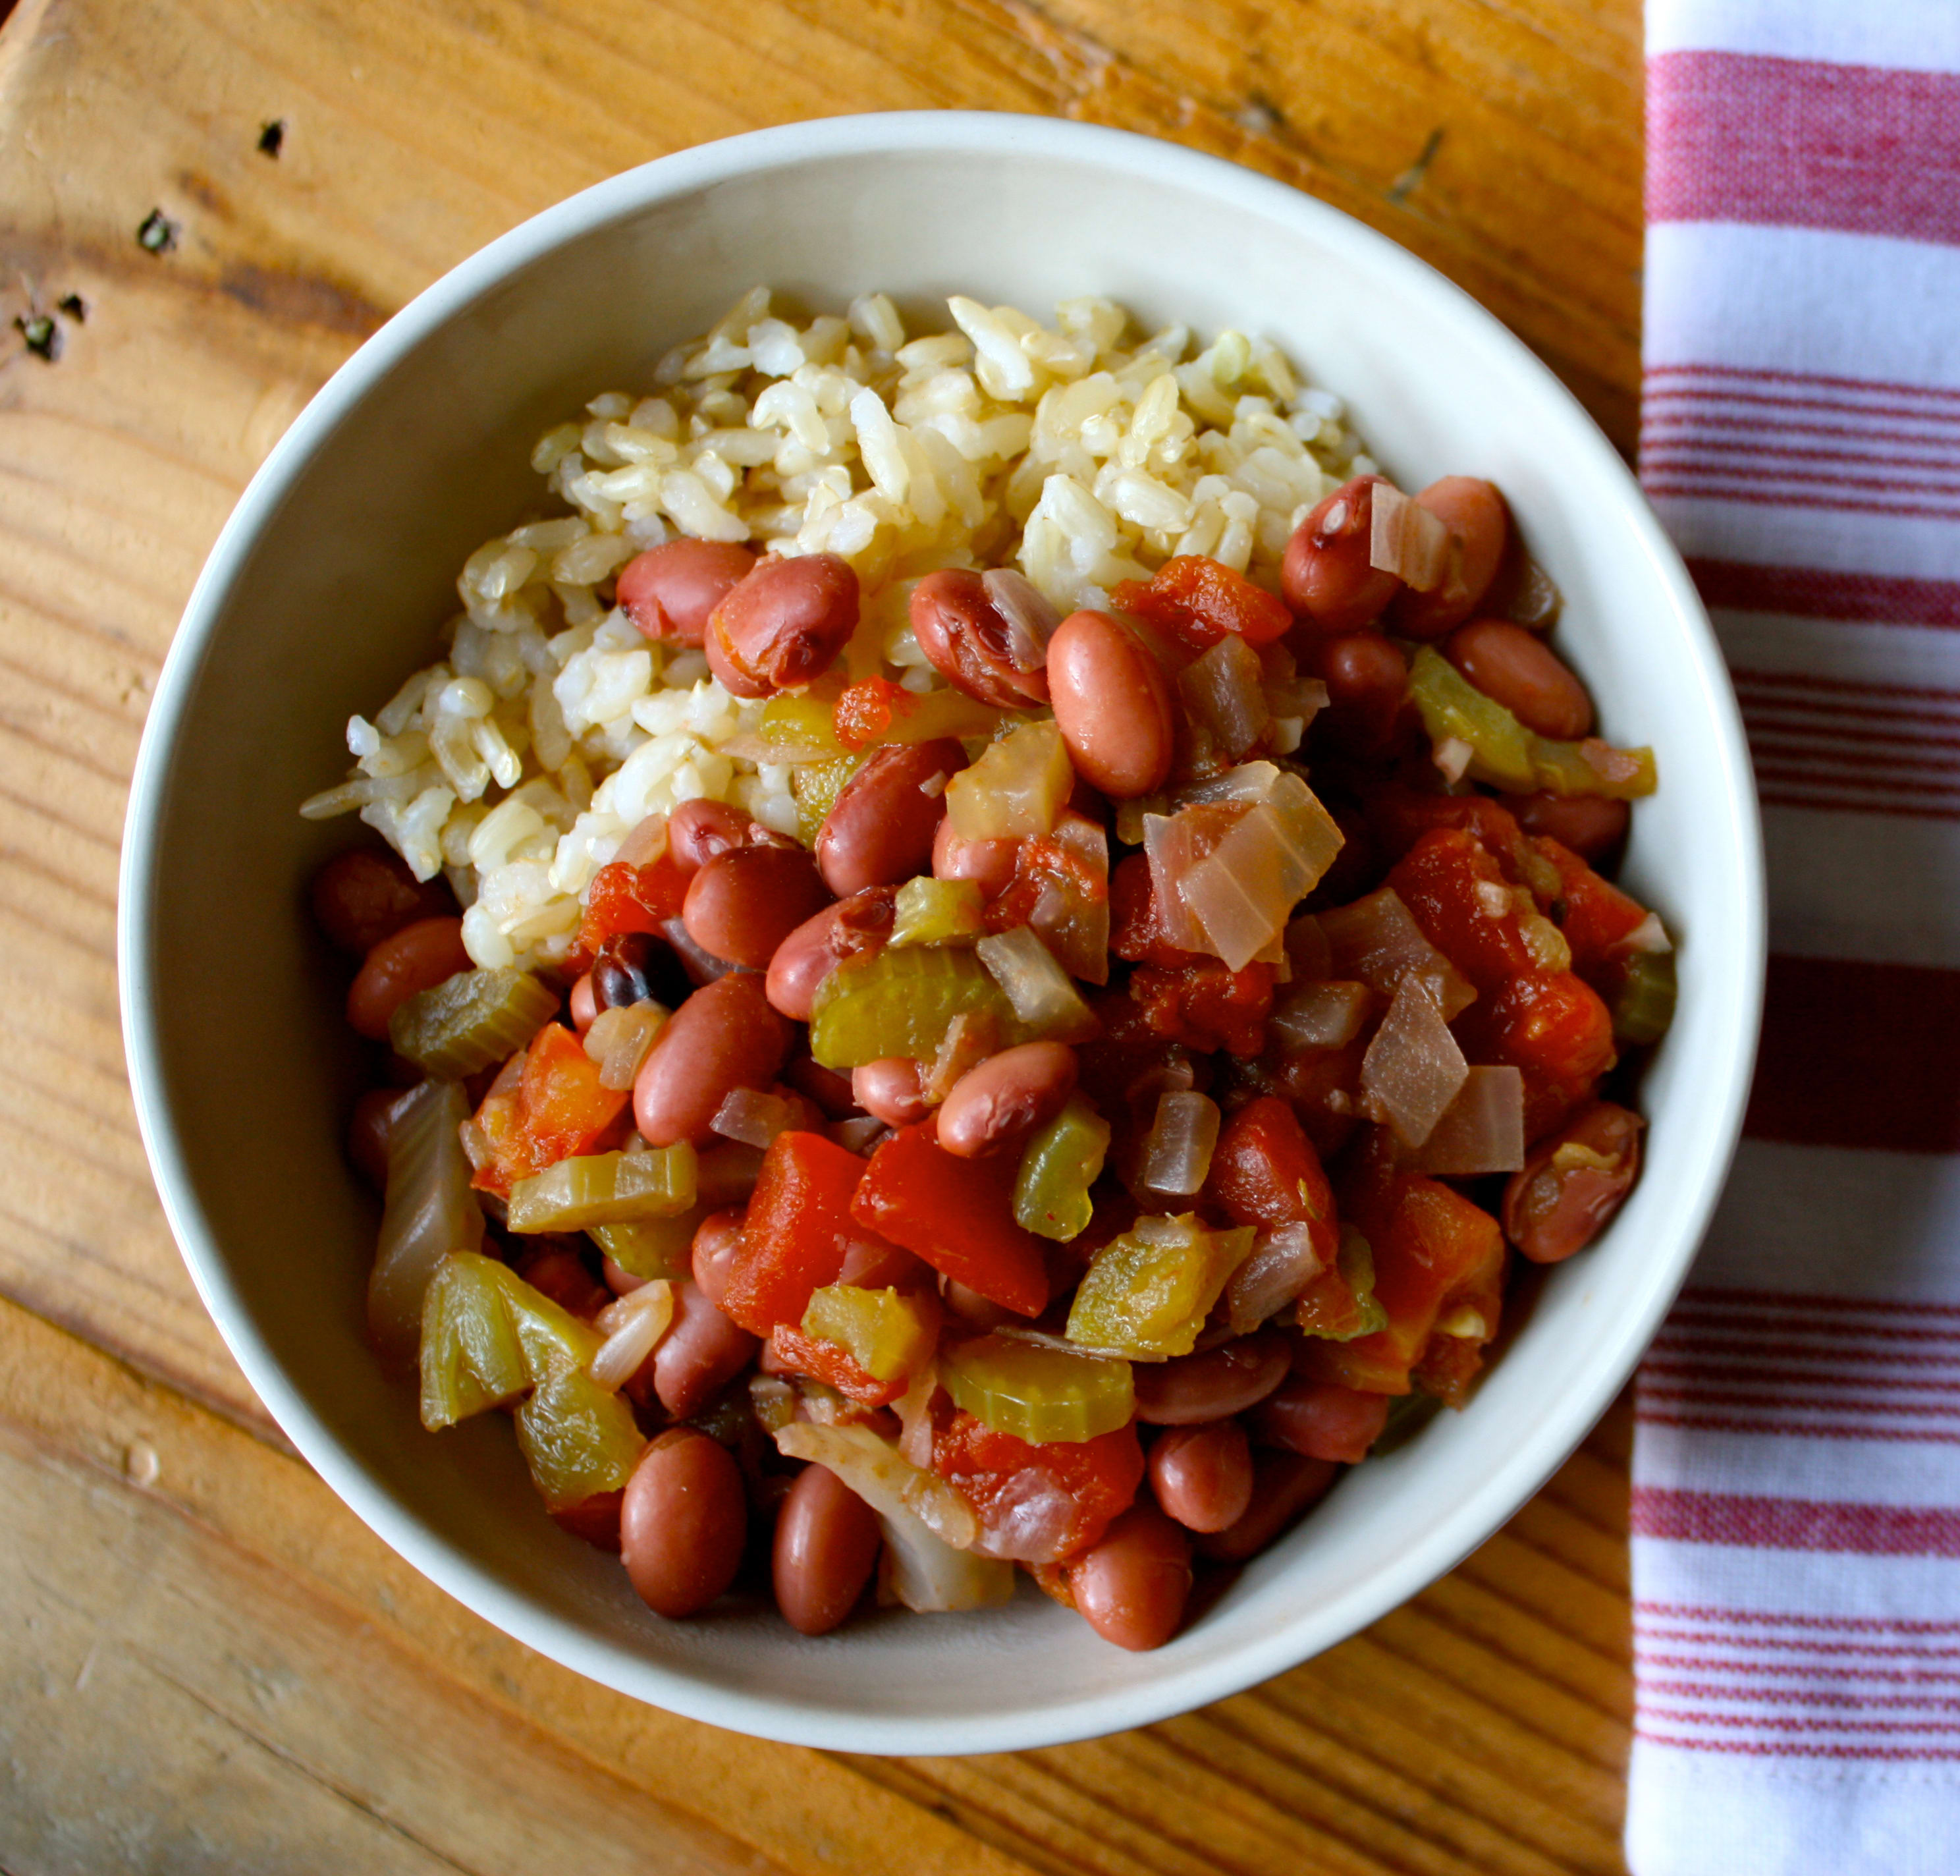 Easy Slow Cooker Recipes: Savory Slow Cooker Beans with Rice